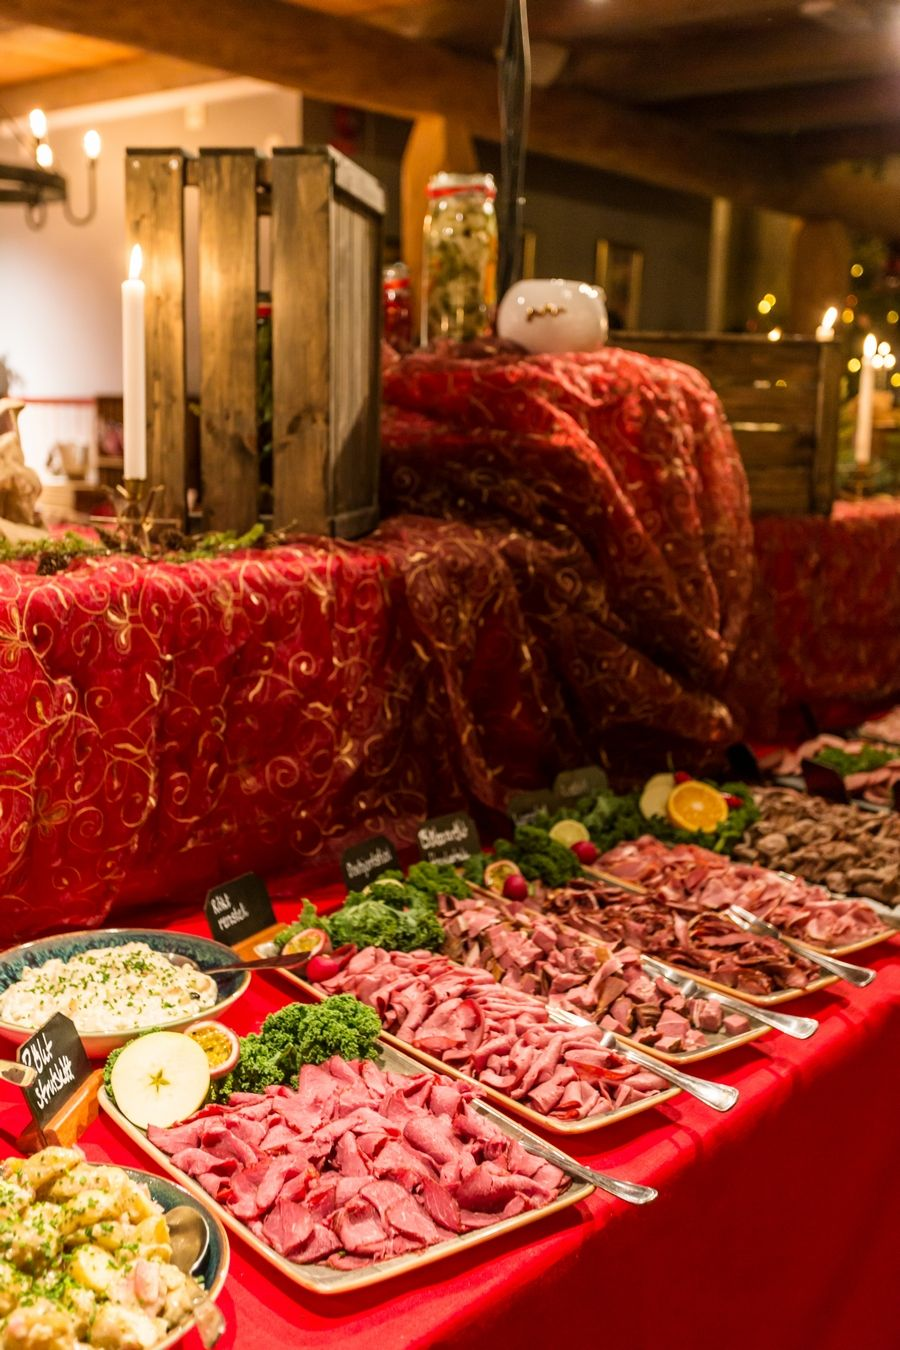 Julbord at Romme Alpin - Swedish Christmas food at a ski resort - Electric Blue Food - Kitchen stories from abroad